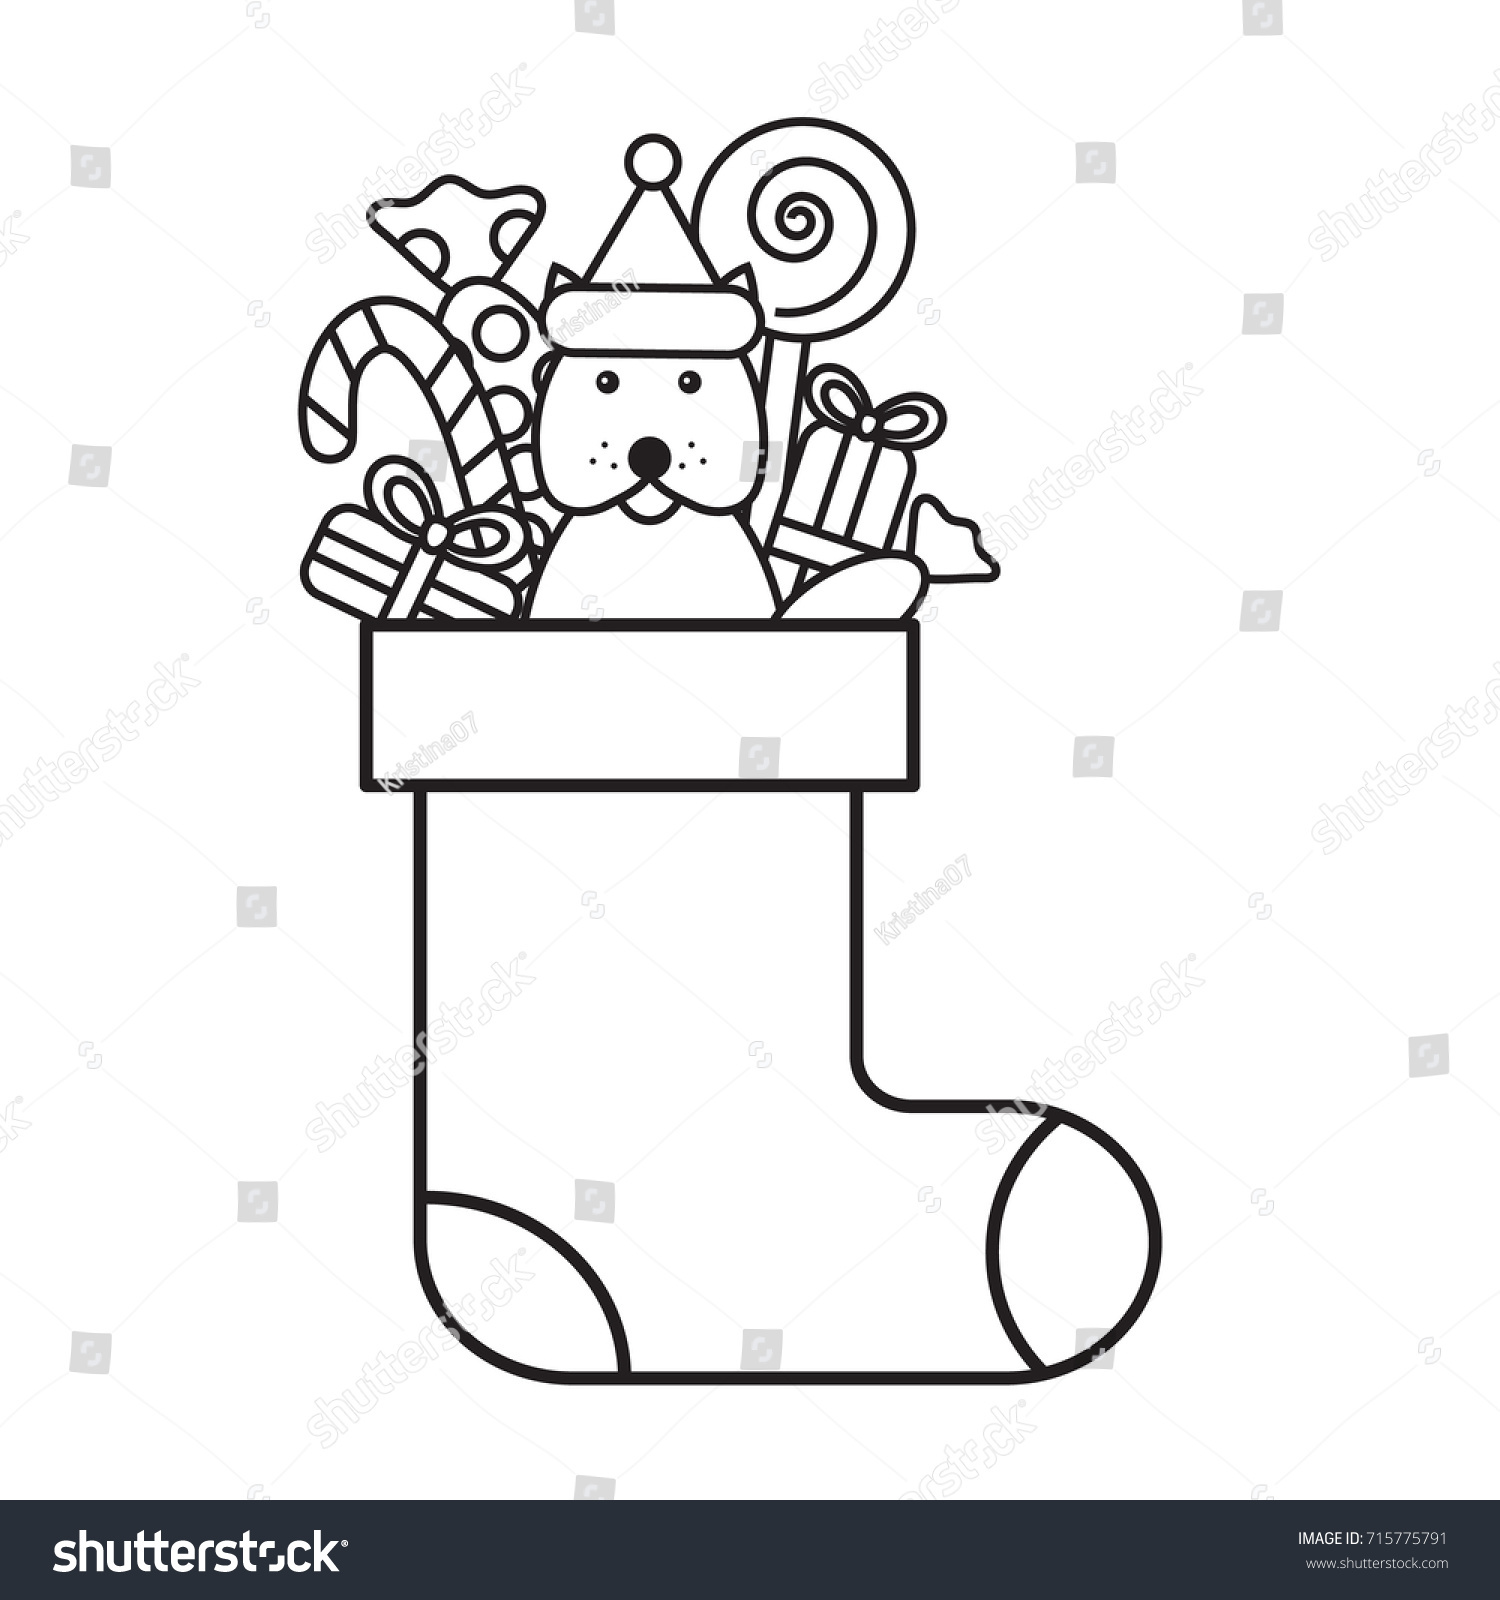 Christmas Coloring Sheets Dog With Page Kids Sock Gifts Stock Vector Royalty Free